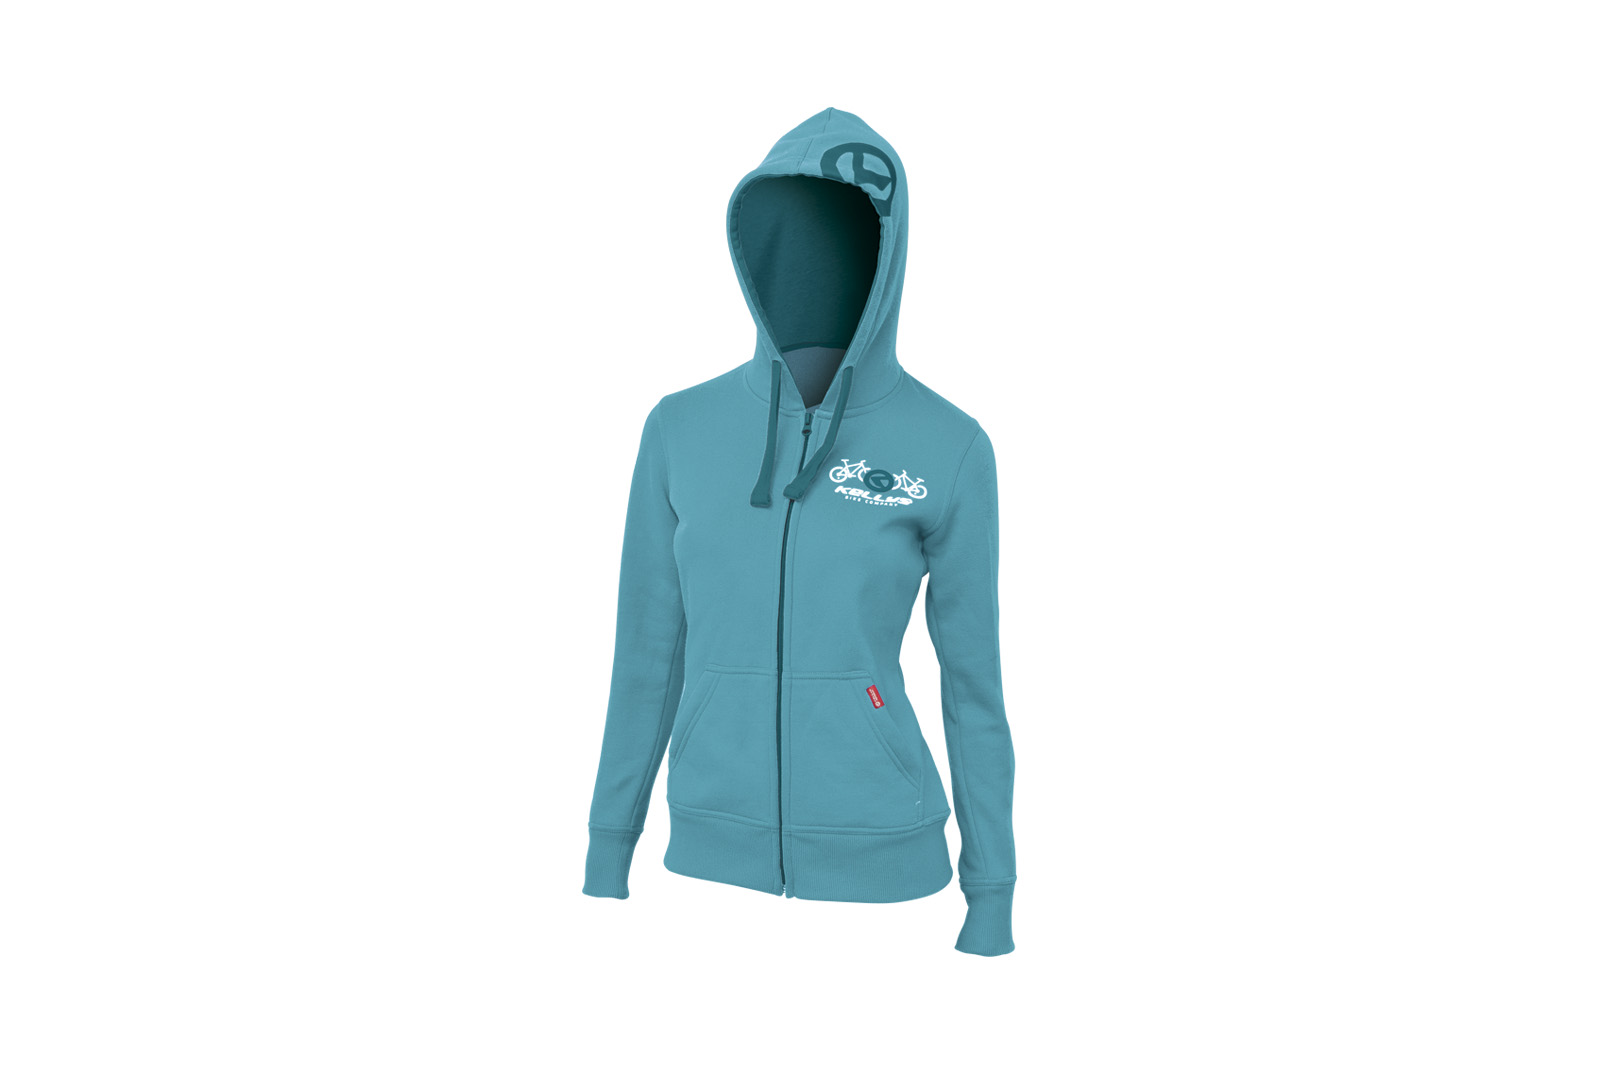 Sweatjacke KELLYS WOMEN´S BASIC Teal - L - Mile-Multisport